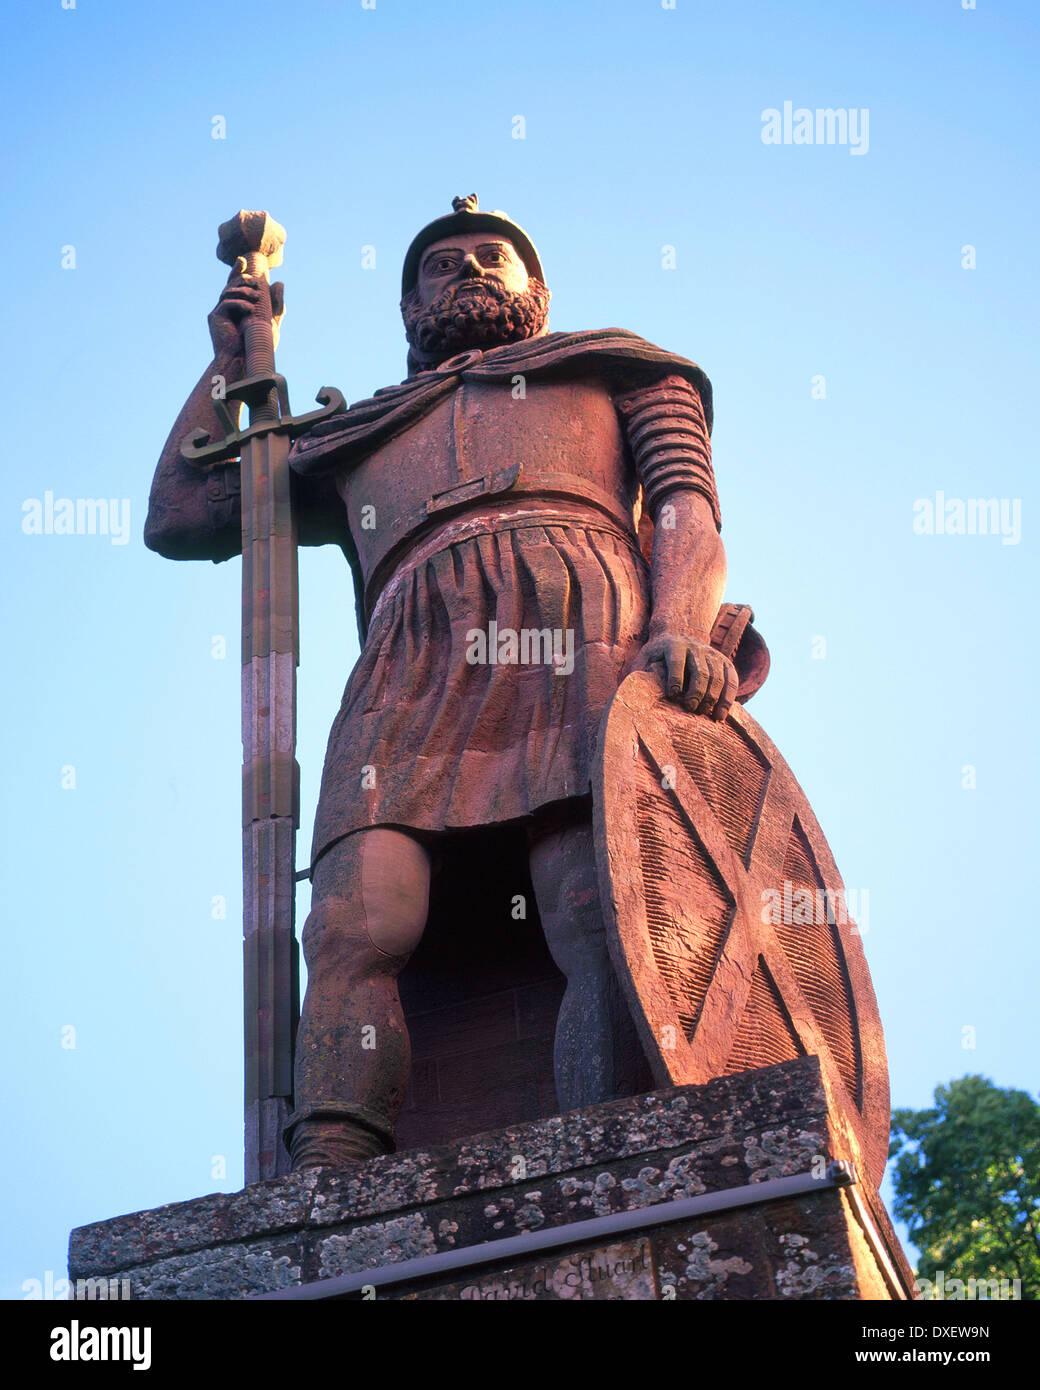 William Wallace Statue - Scottish Borders - Stock Image